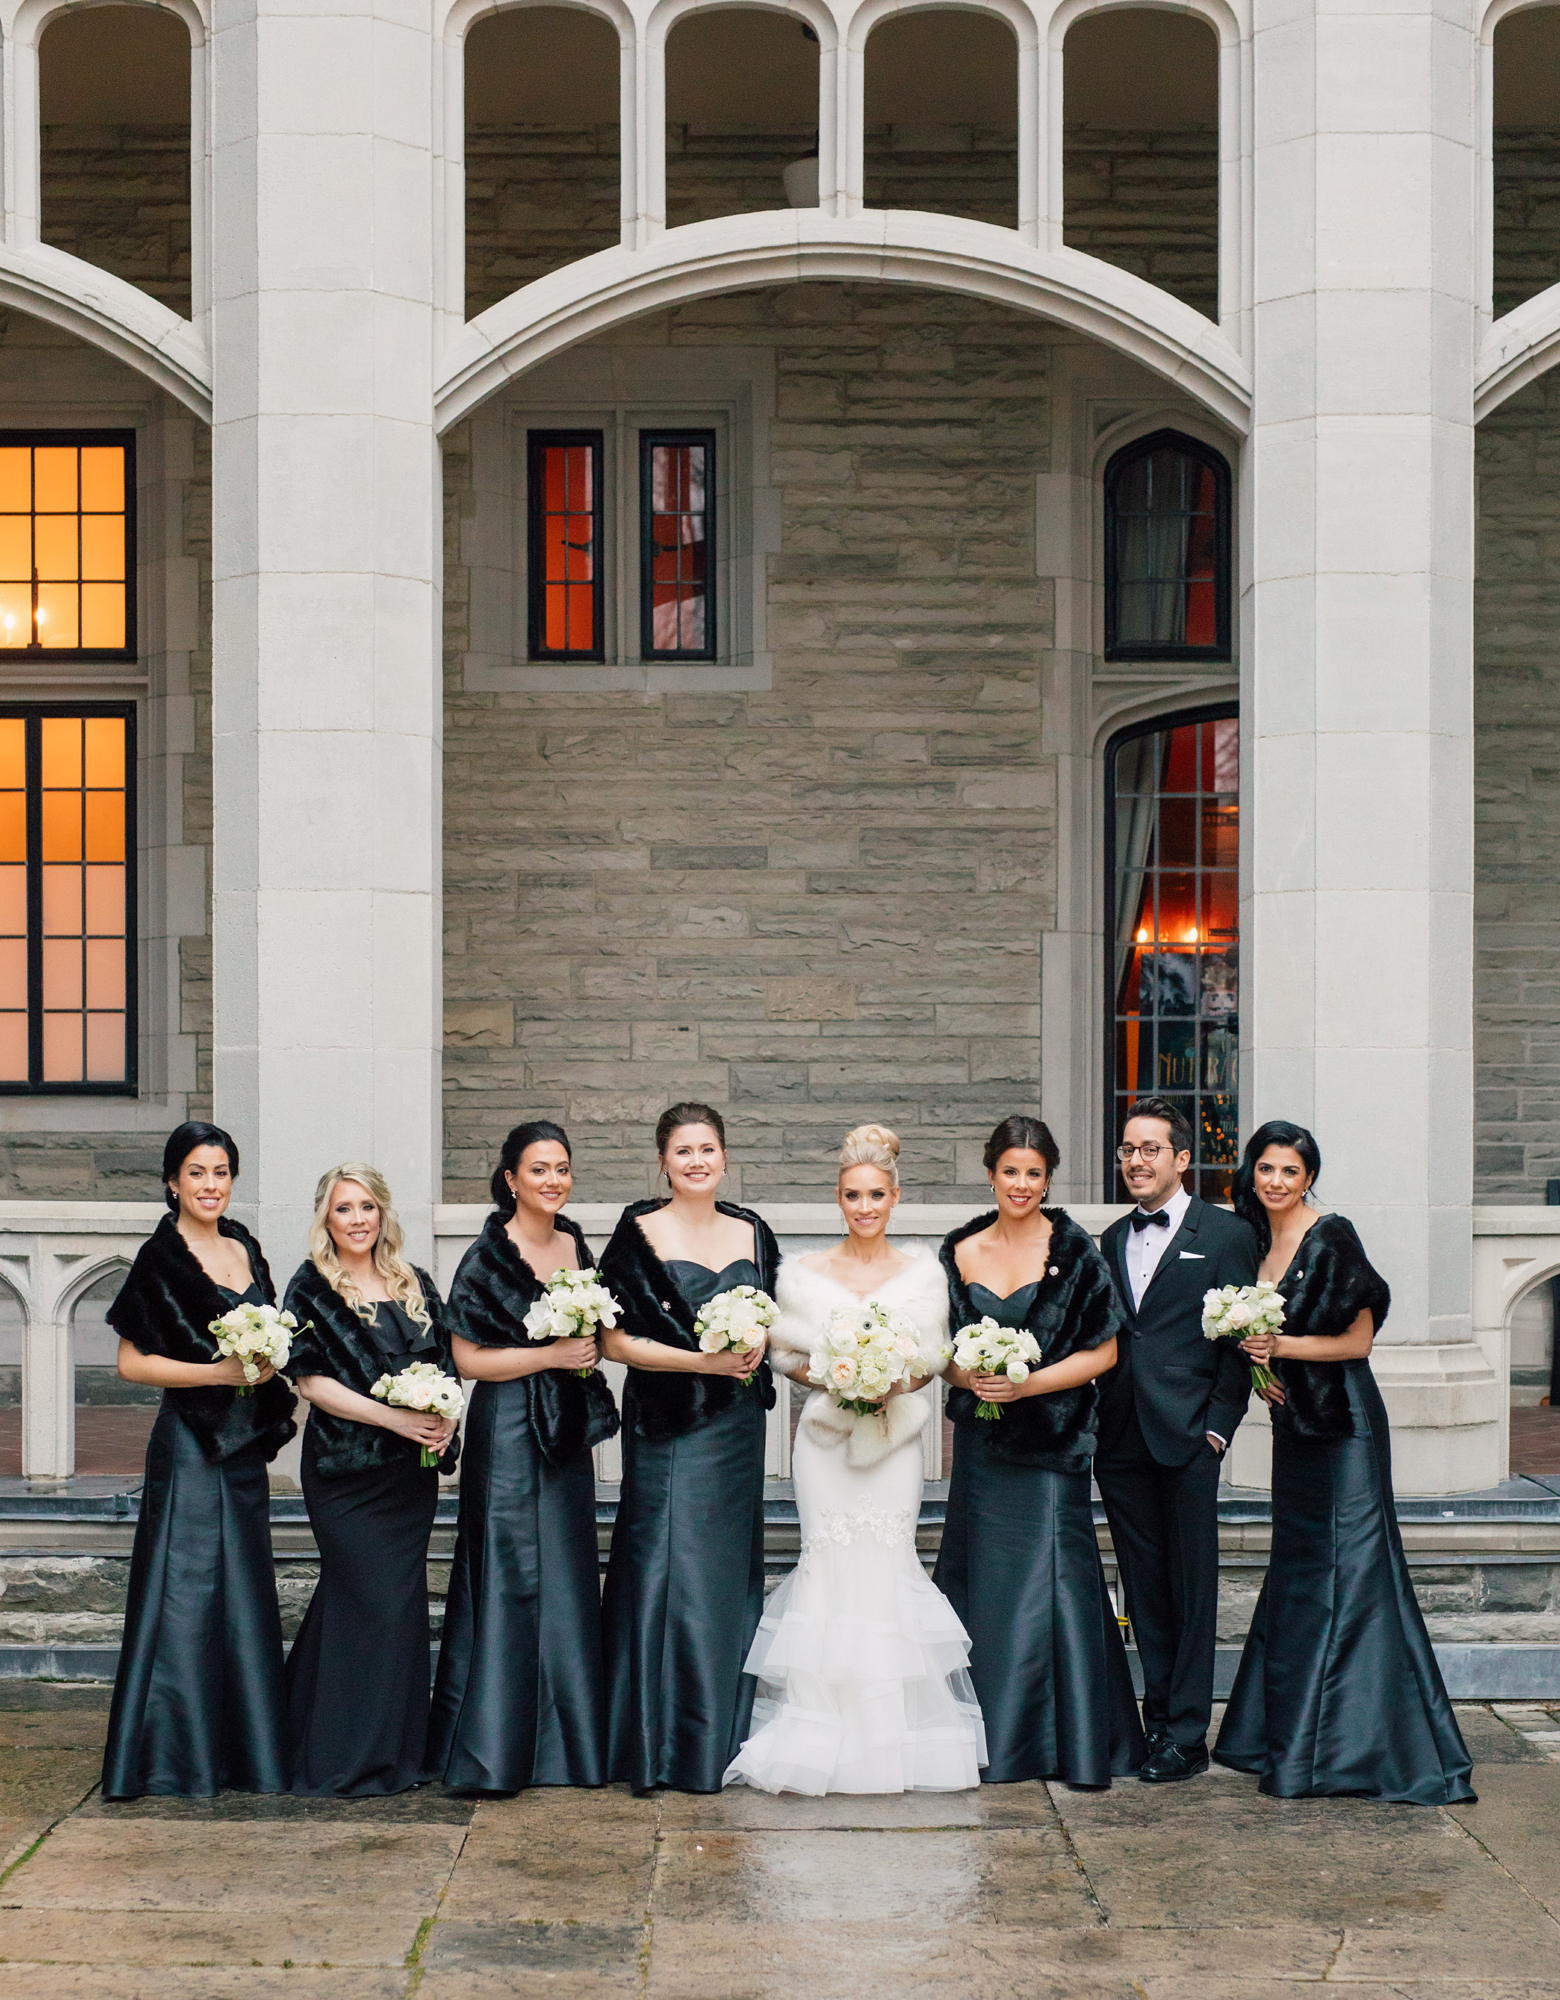 monochrome bridal party